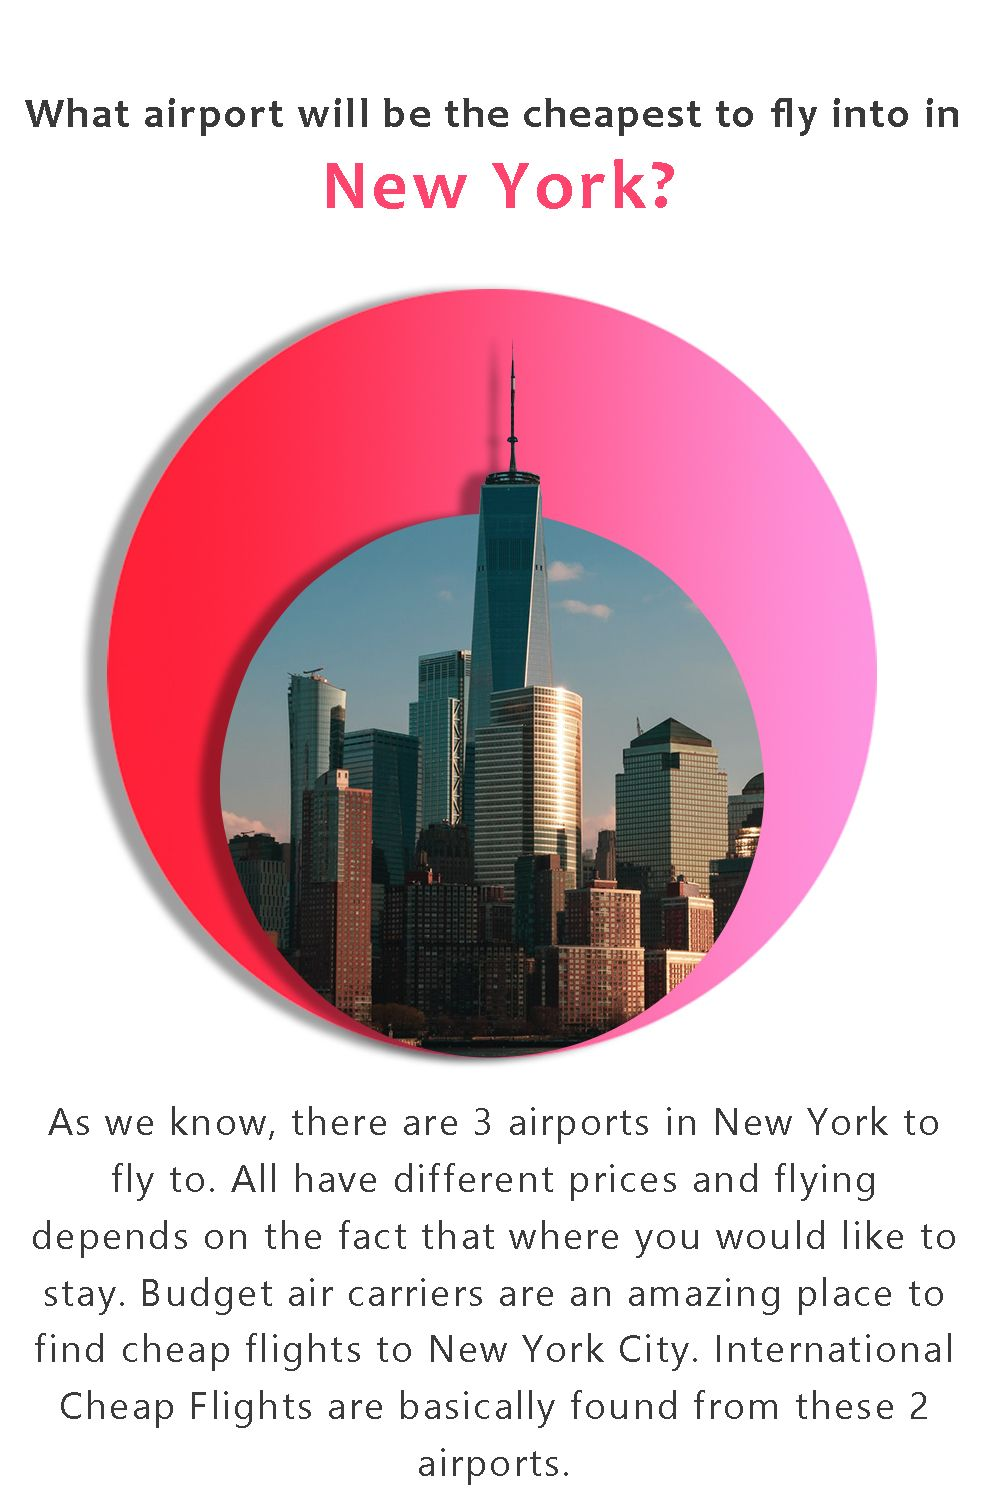 Need Cheap Flights? Find the cheapest flight tickets to anywhere and you can big save on your flights to vegas.. #cheapflights #cheaptickets #miami #florida #vegas #nevada #newyork #nyc #las #unitedstates